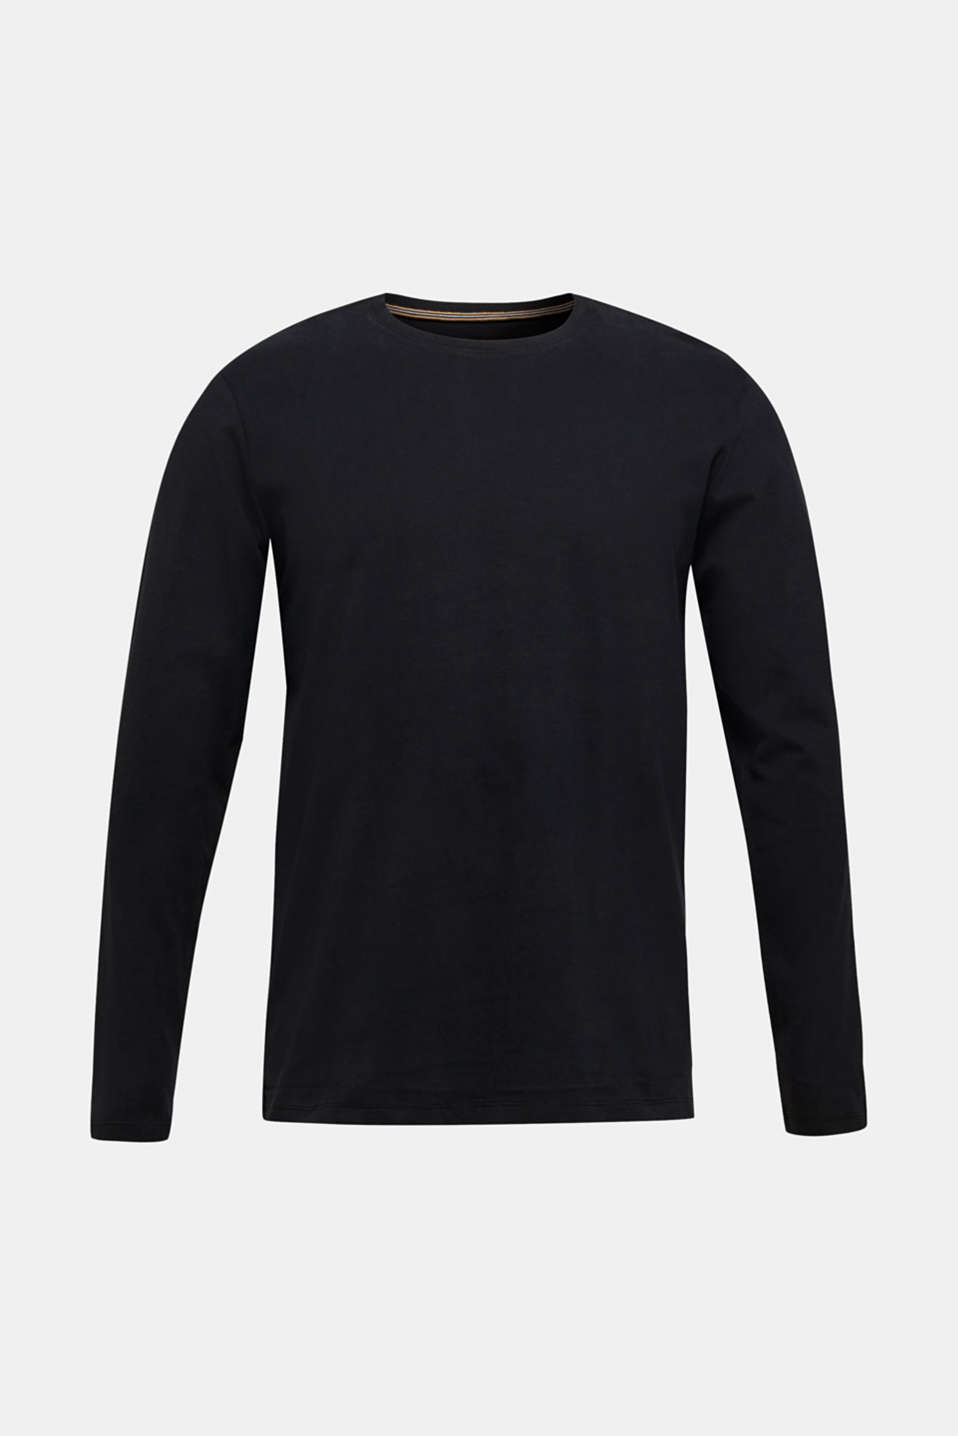 Long sleeve jersey top in 100% cotton, BLACK, detail image number 6